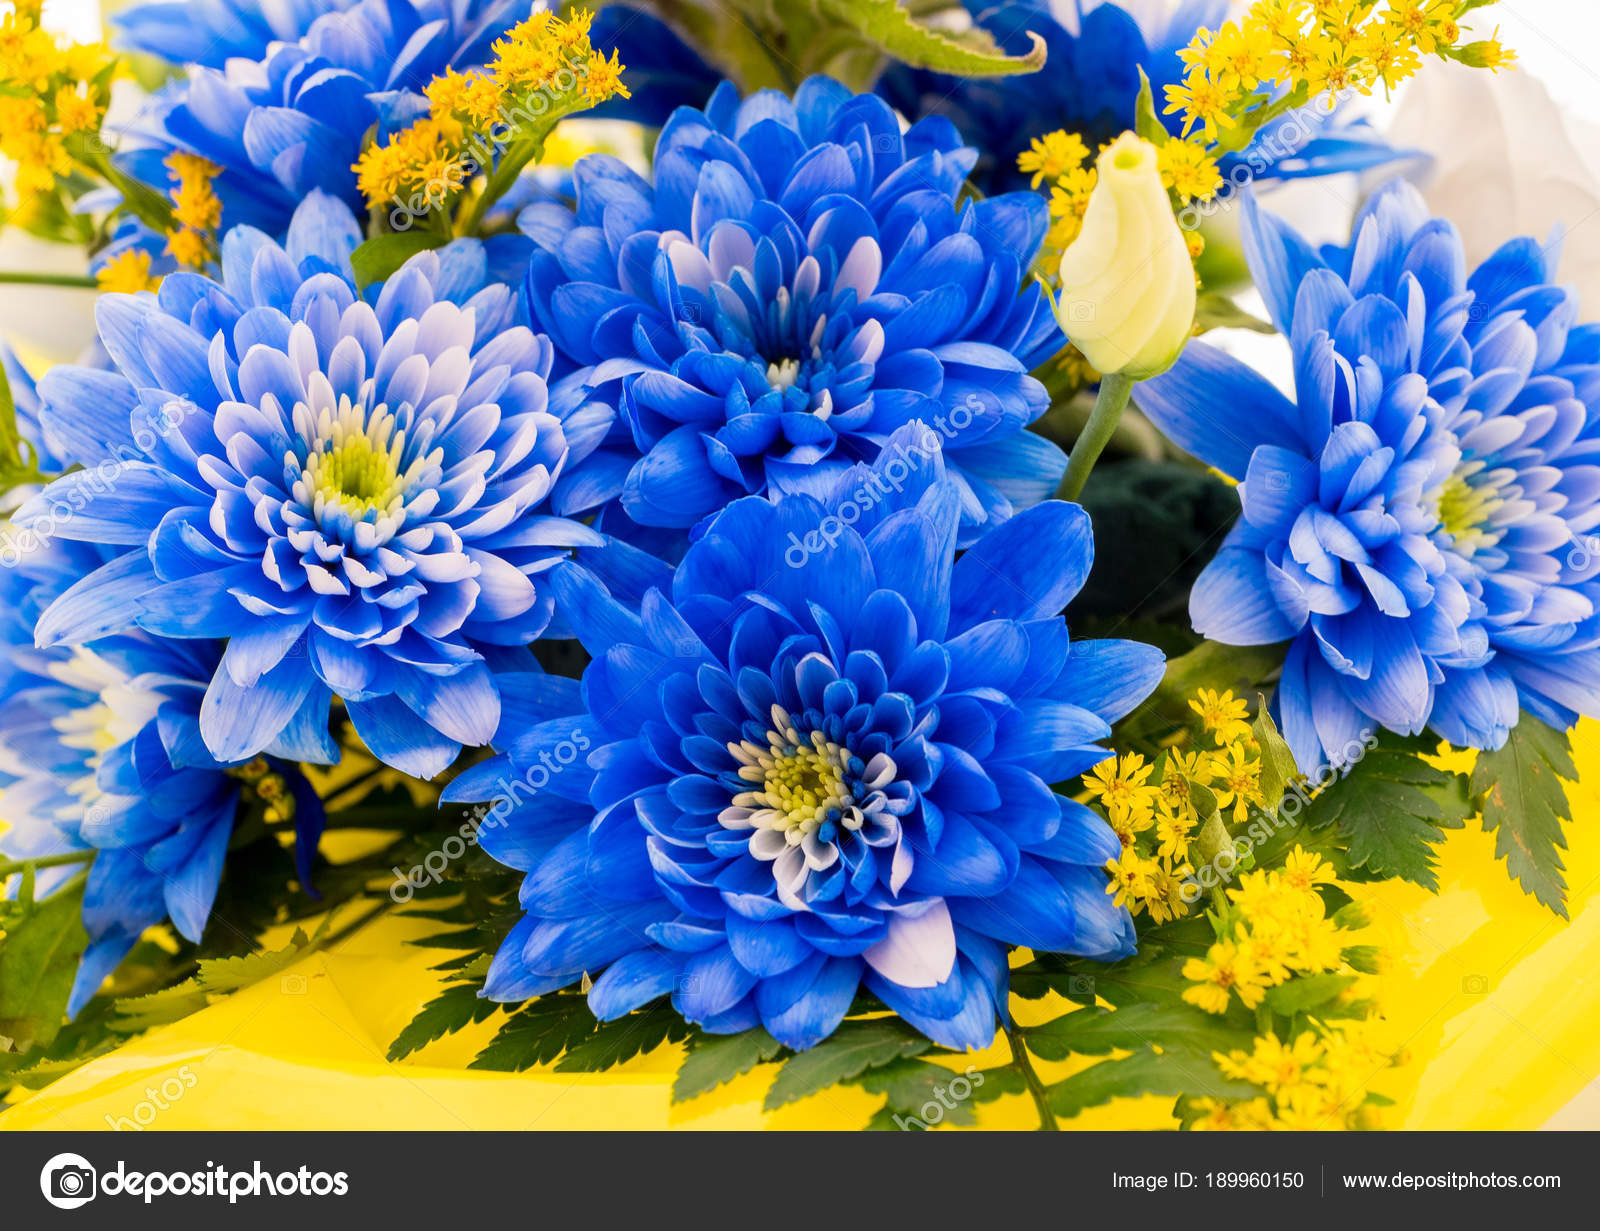 Bouquet Fiori Gialli.Images Blue And Yellow Flower Blue And Yellow Flowers Bouquet